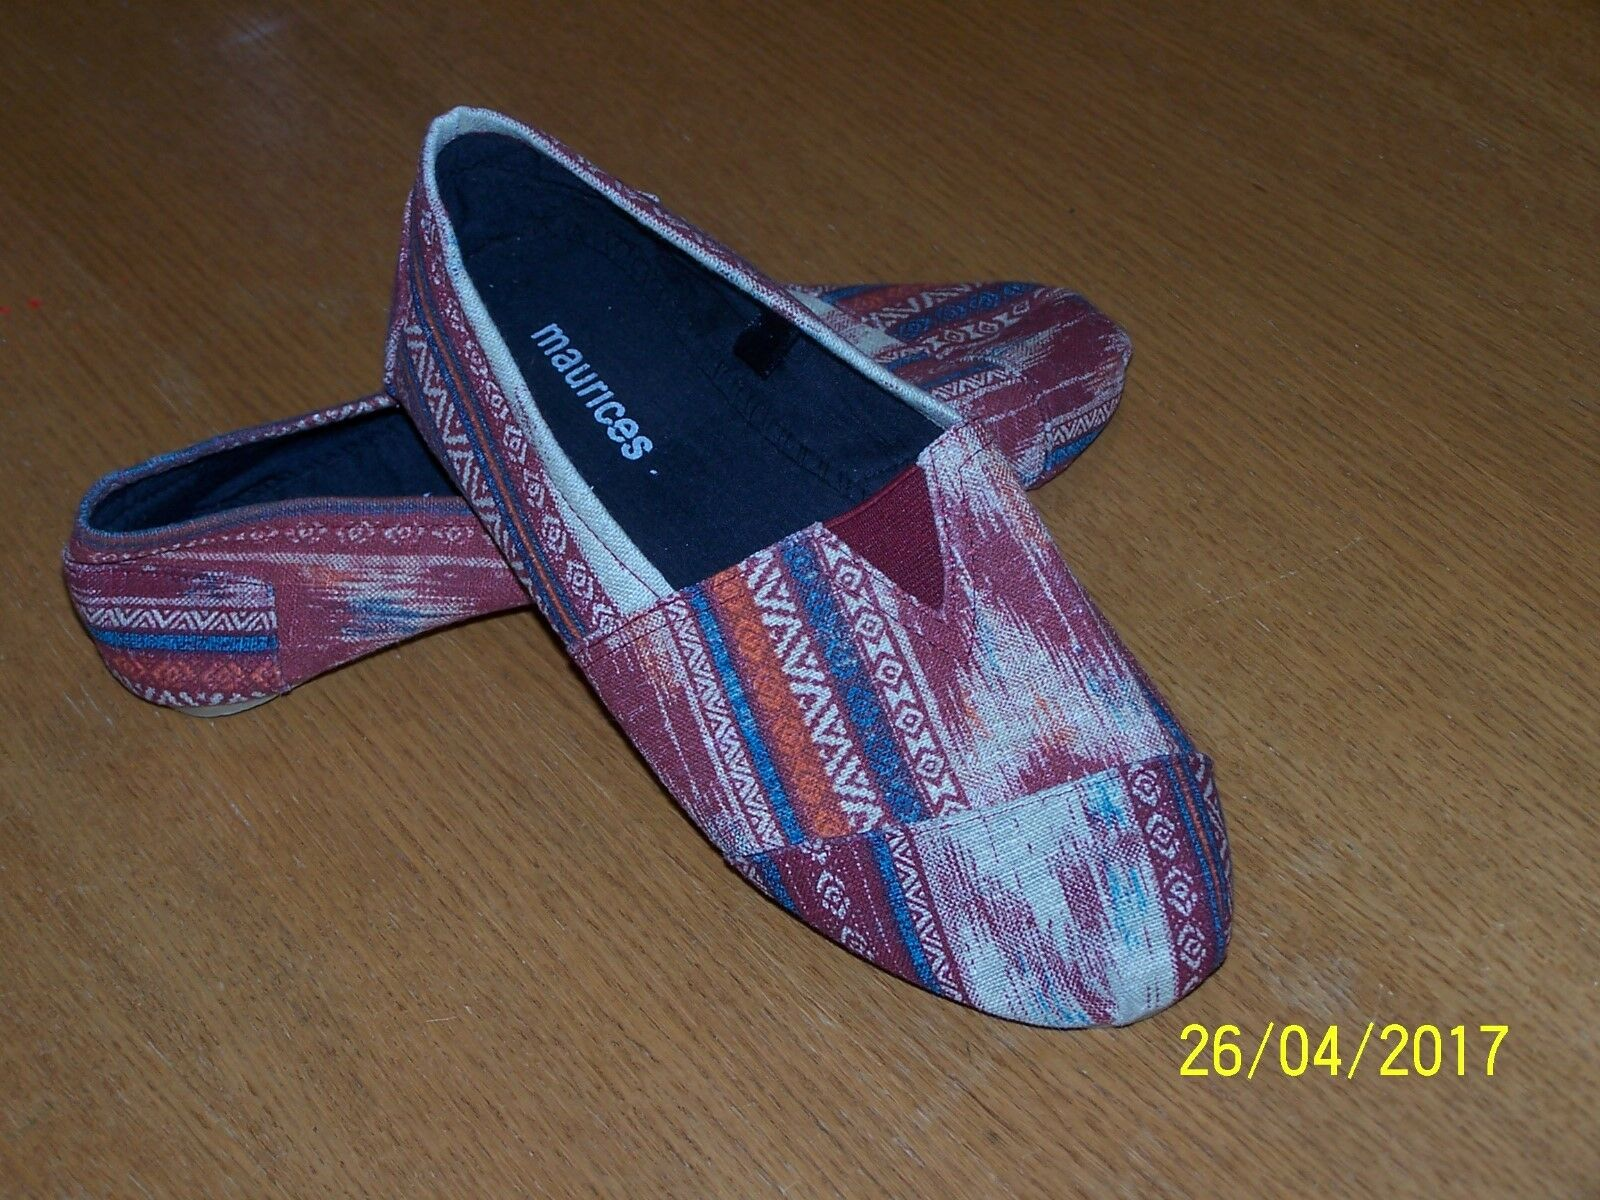 MAURICES BRAND SIZE MULTI-COLORED FABRIC BALLET FLATS SIZE BRAND 8M NWOB 2a4b41